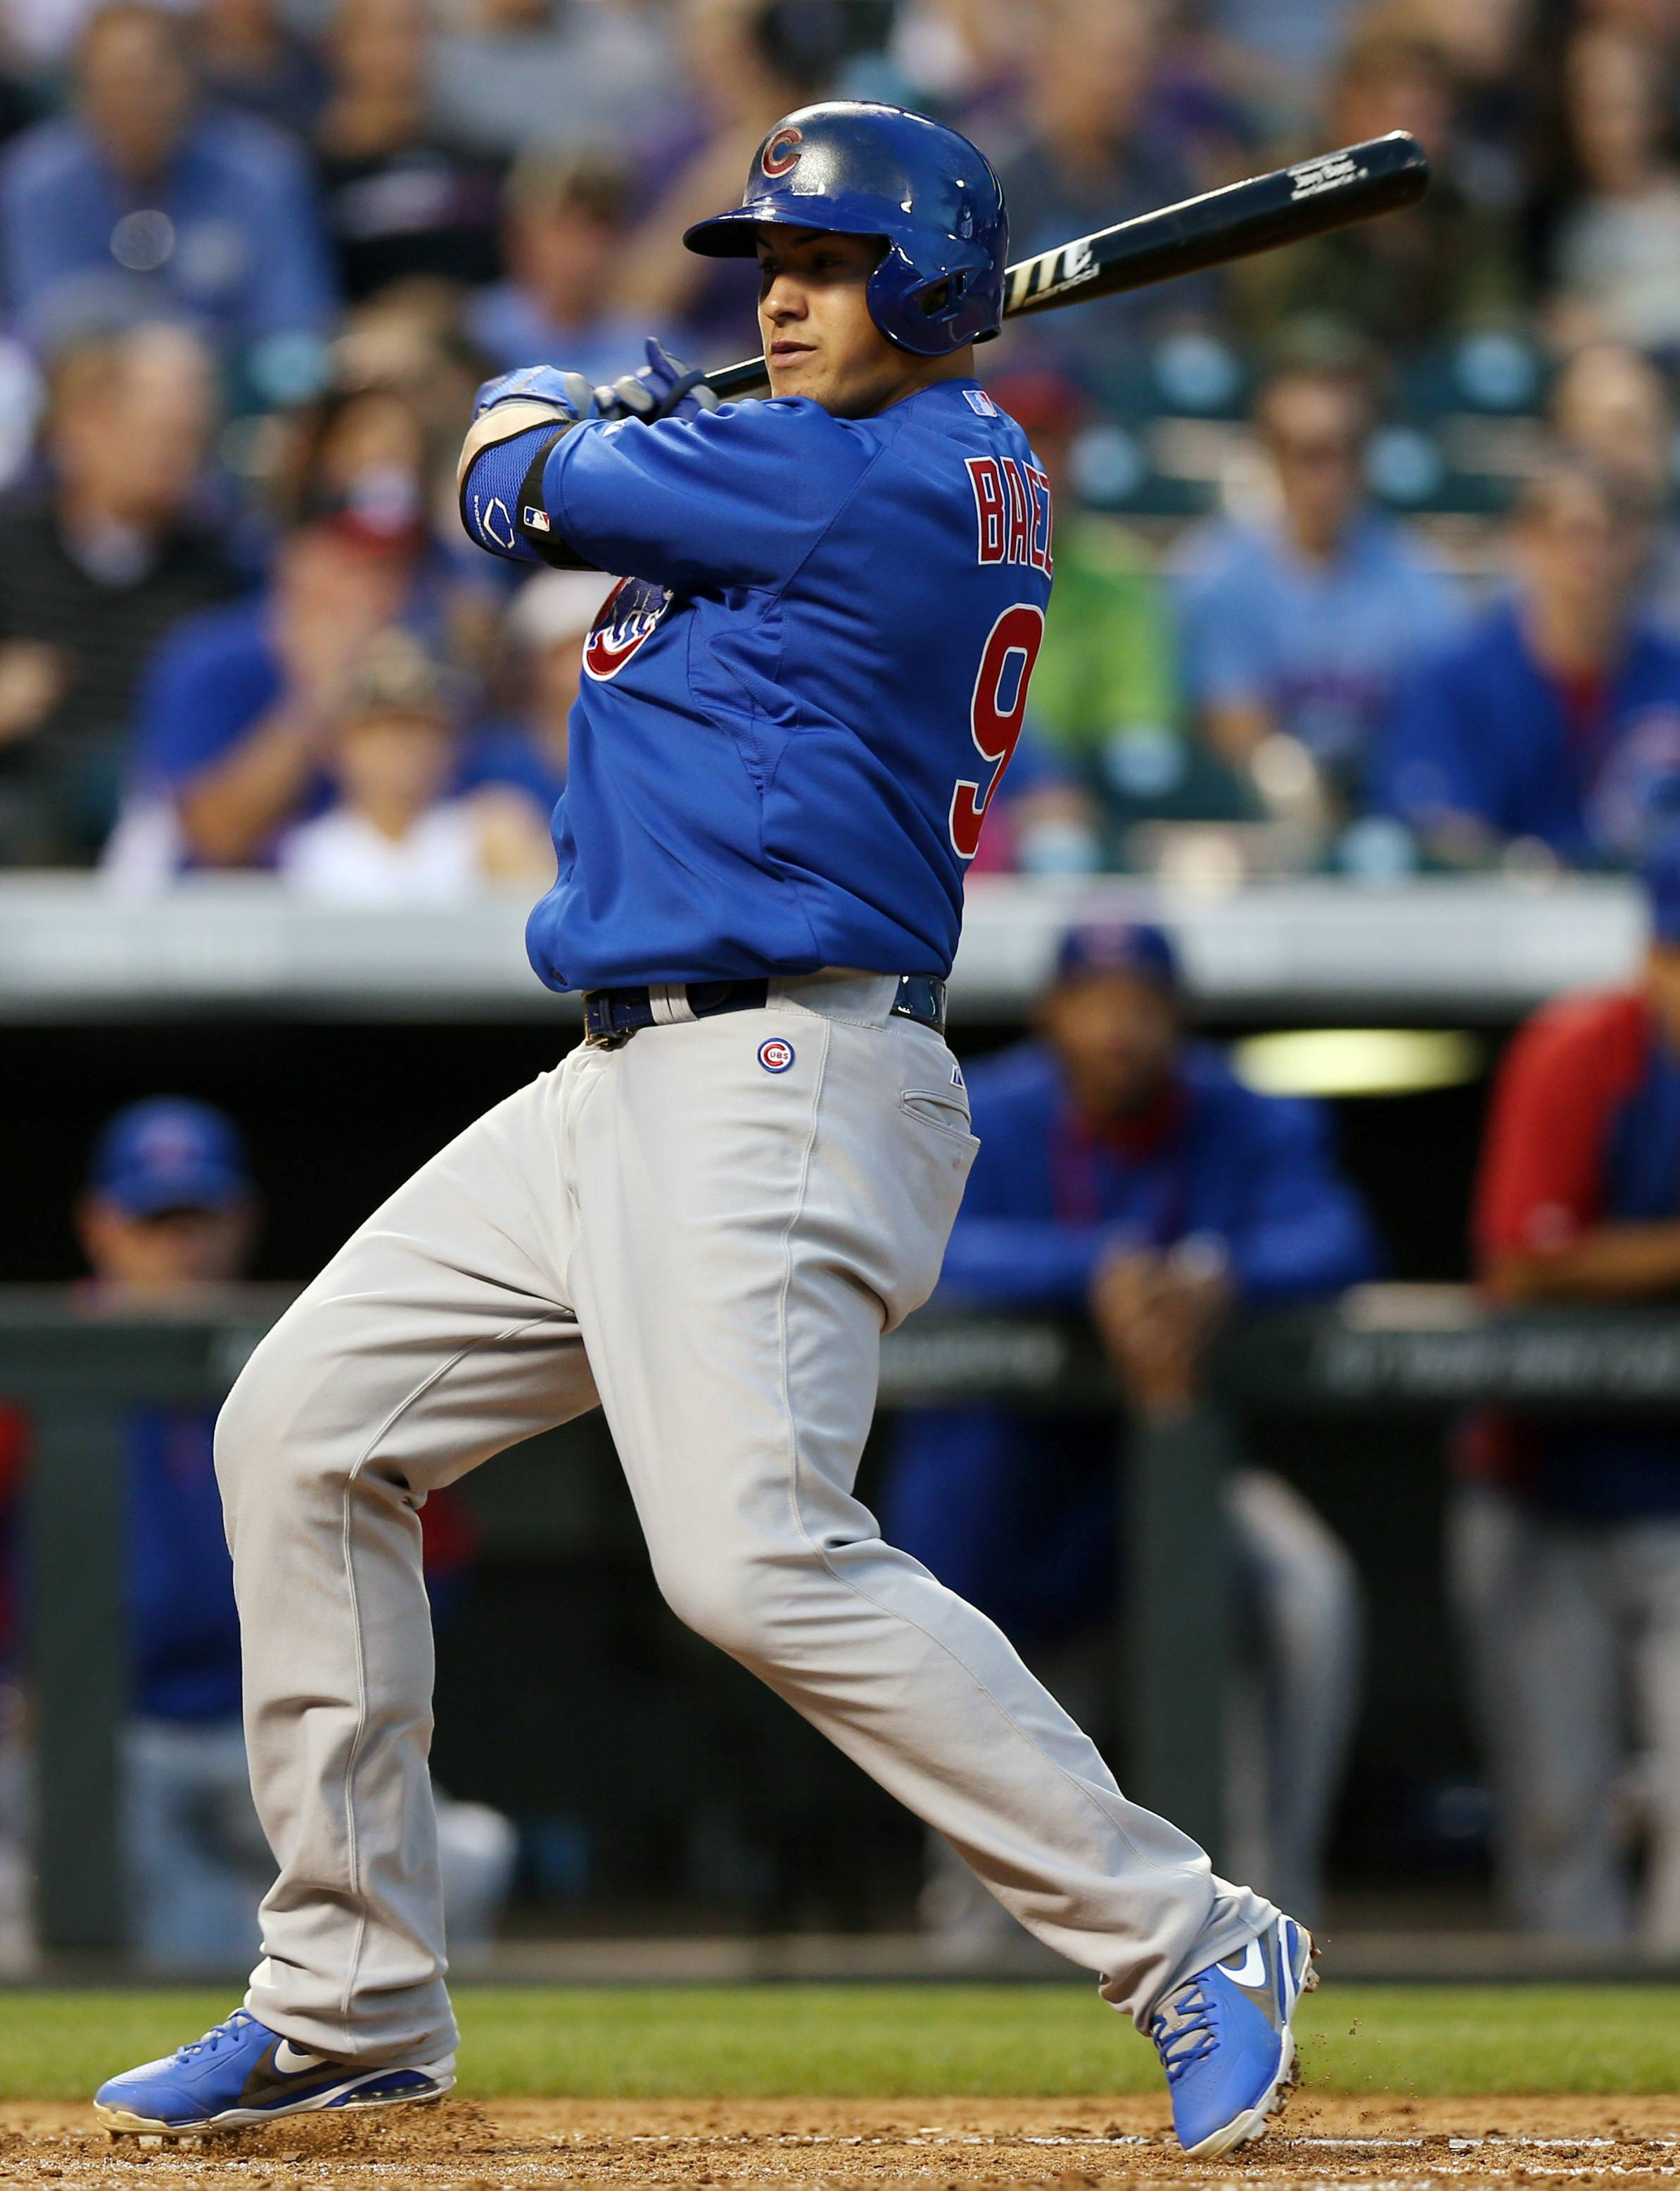 The promotion of prize prospect Javier Baez on Tuesday appears to be a watershed moment for the Cubs, according to Bruce Miles.